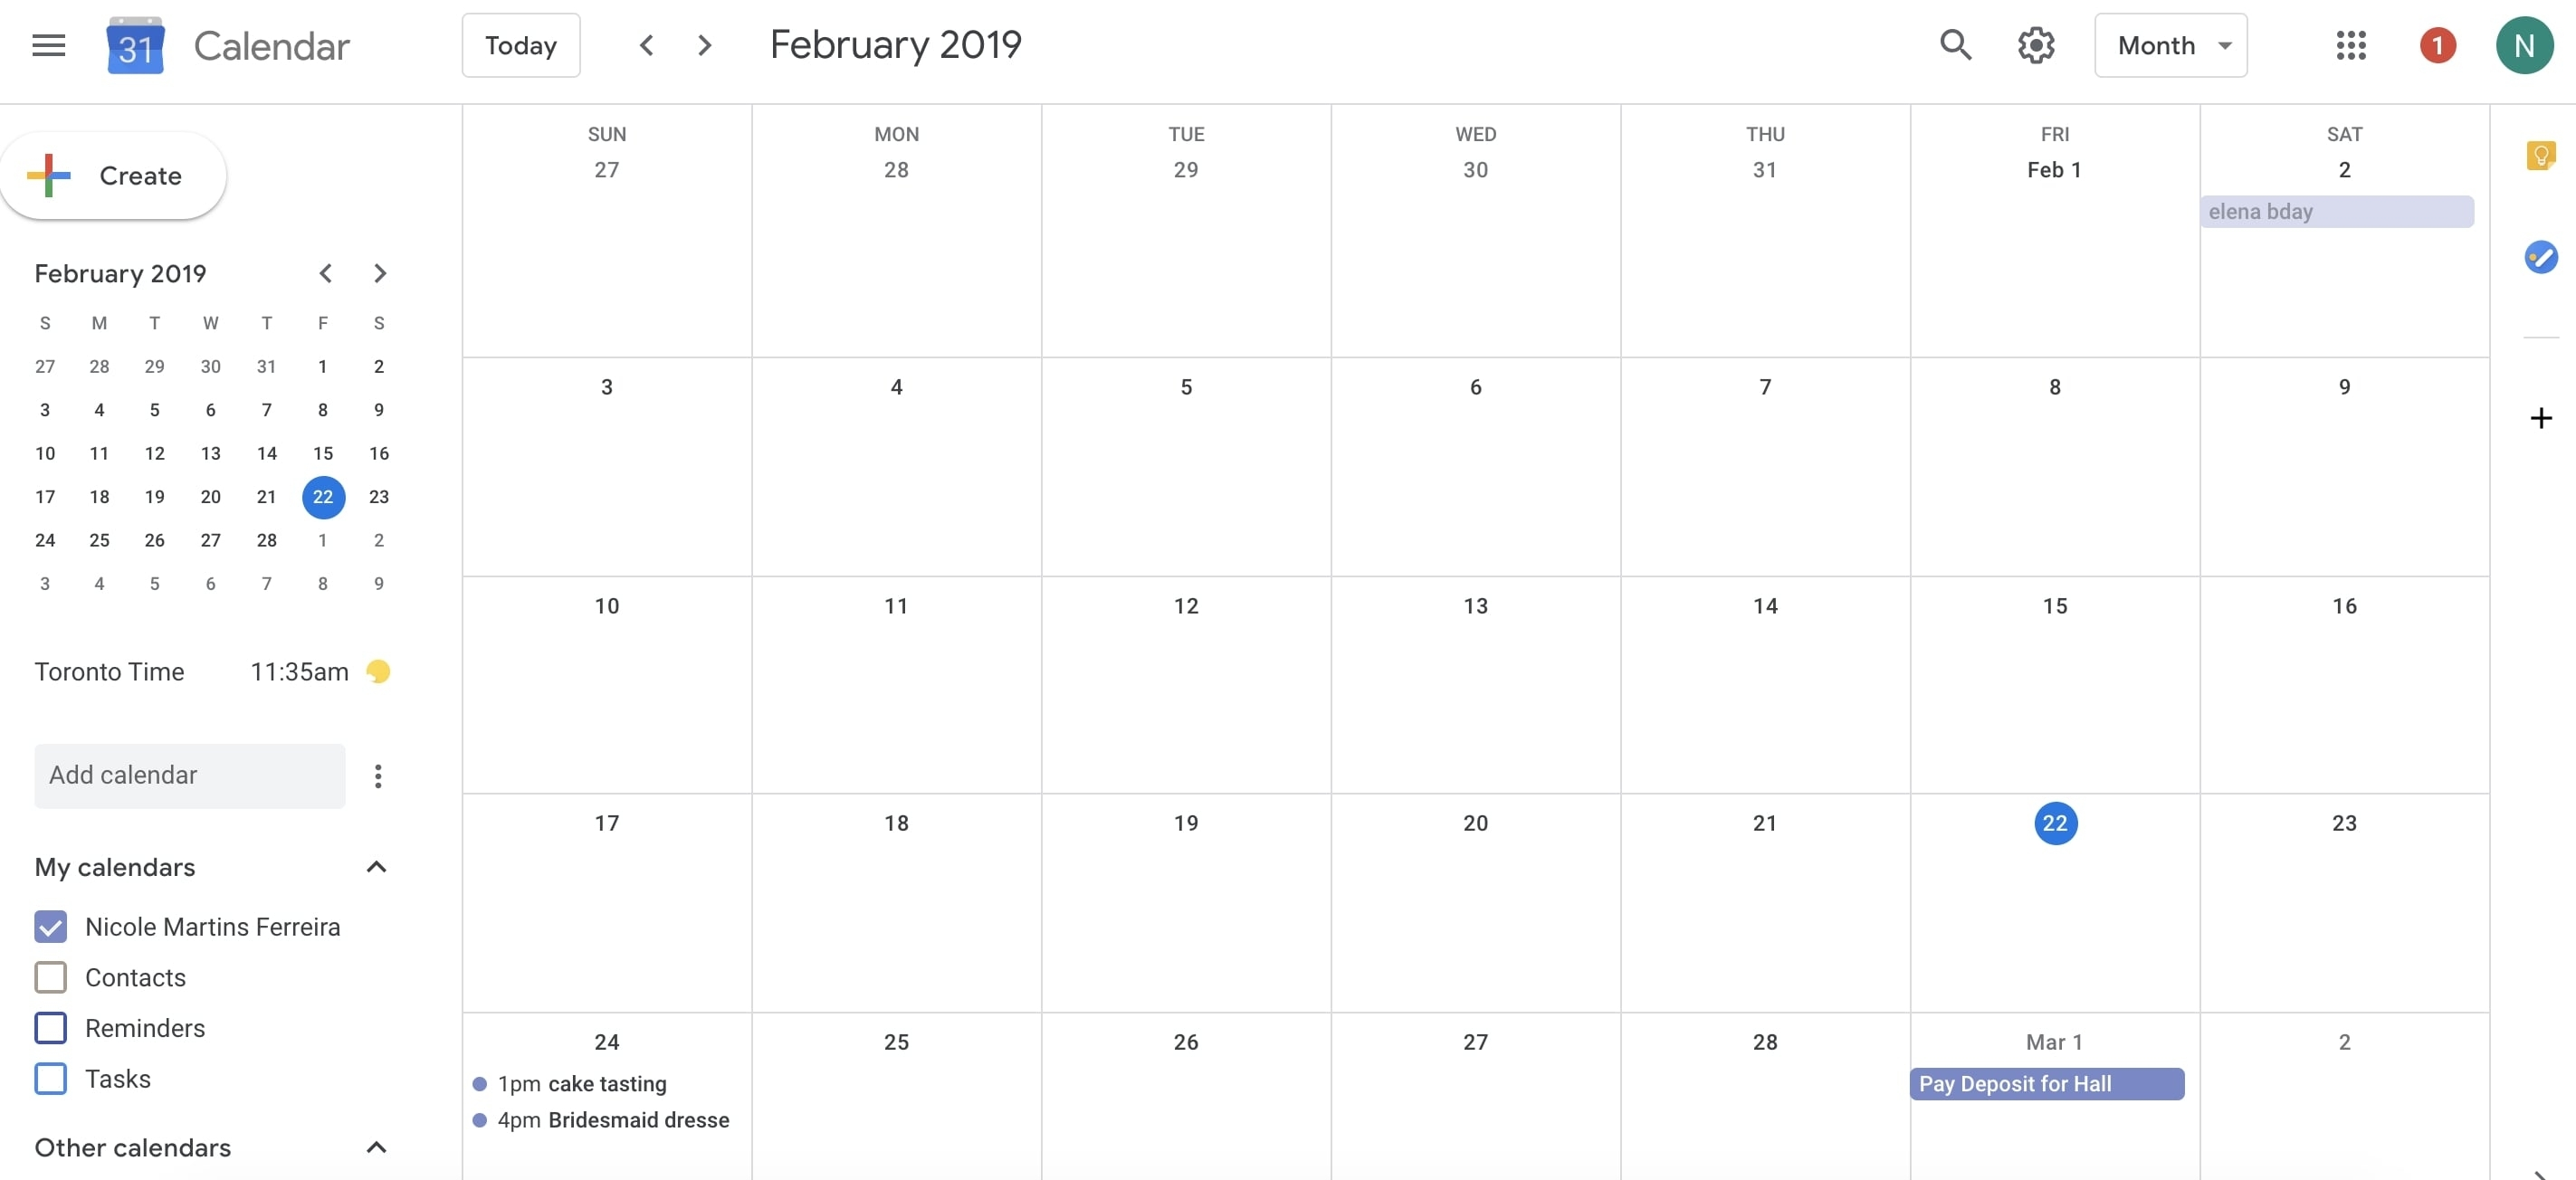 20 Ways To Use Google Calendar To Maximize Your Day In 2019